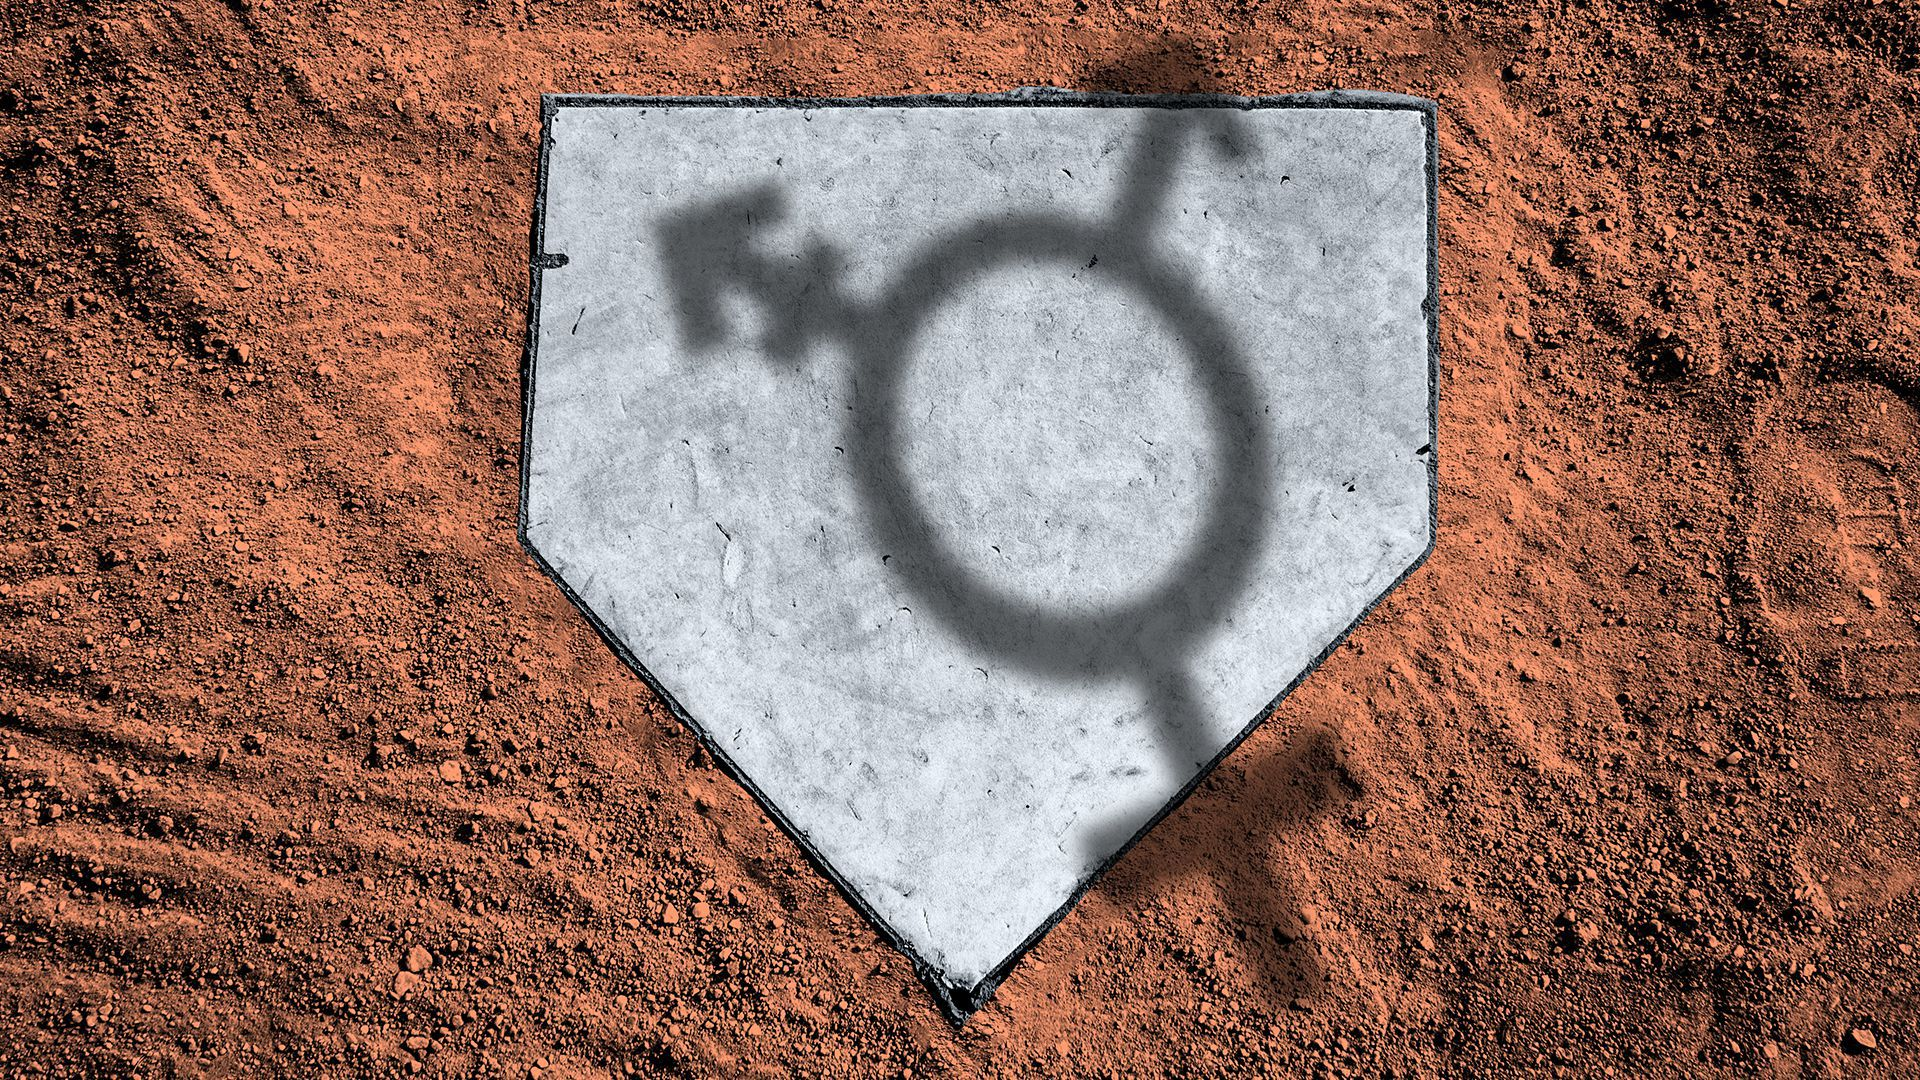 Illustration of a baseball home plate with the shadow of a transgender symbol cast over it.